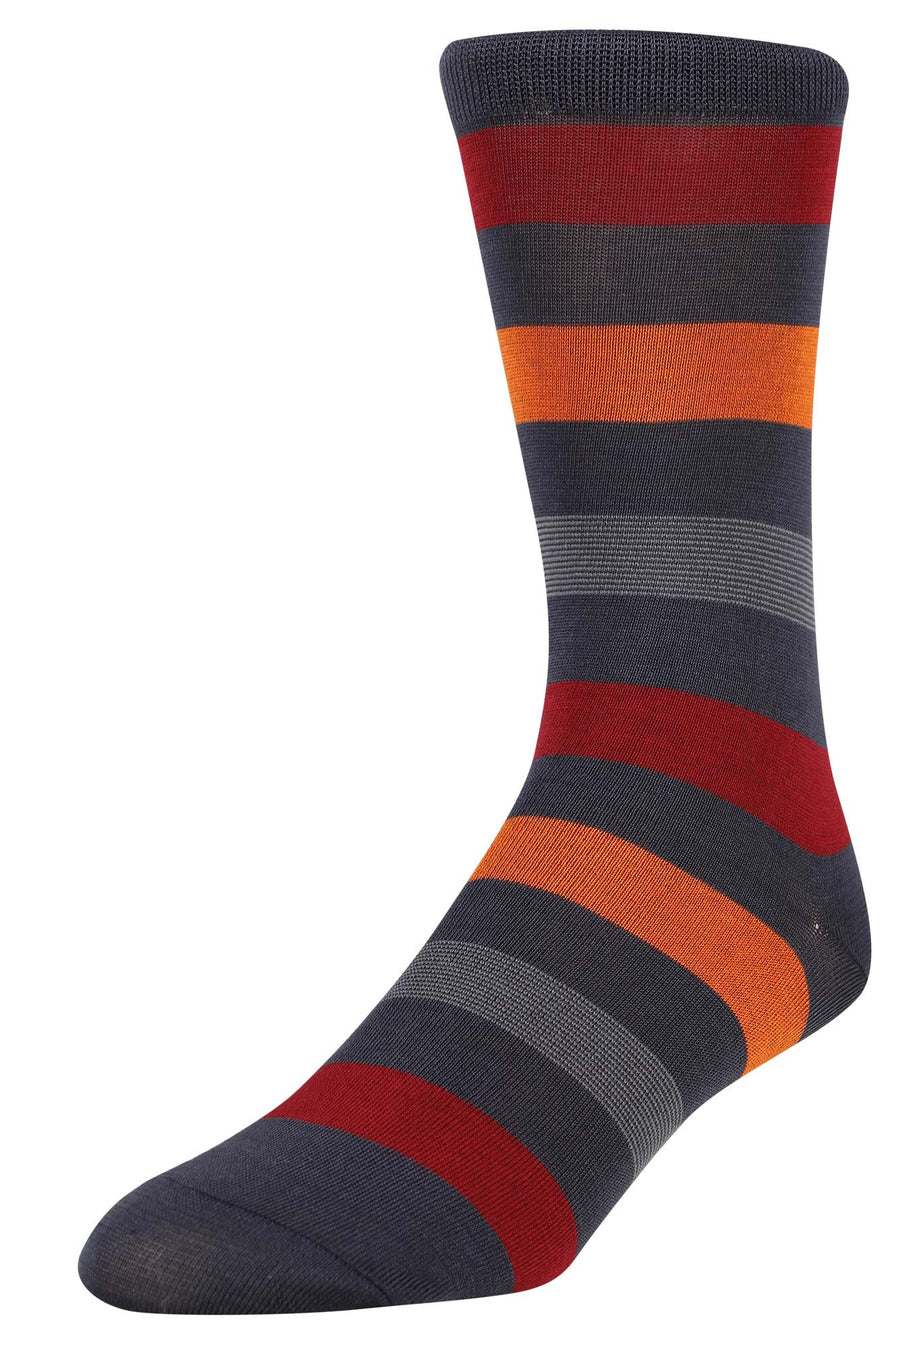 Ron Bennett Socks in Stripe Red